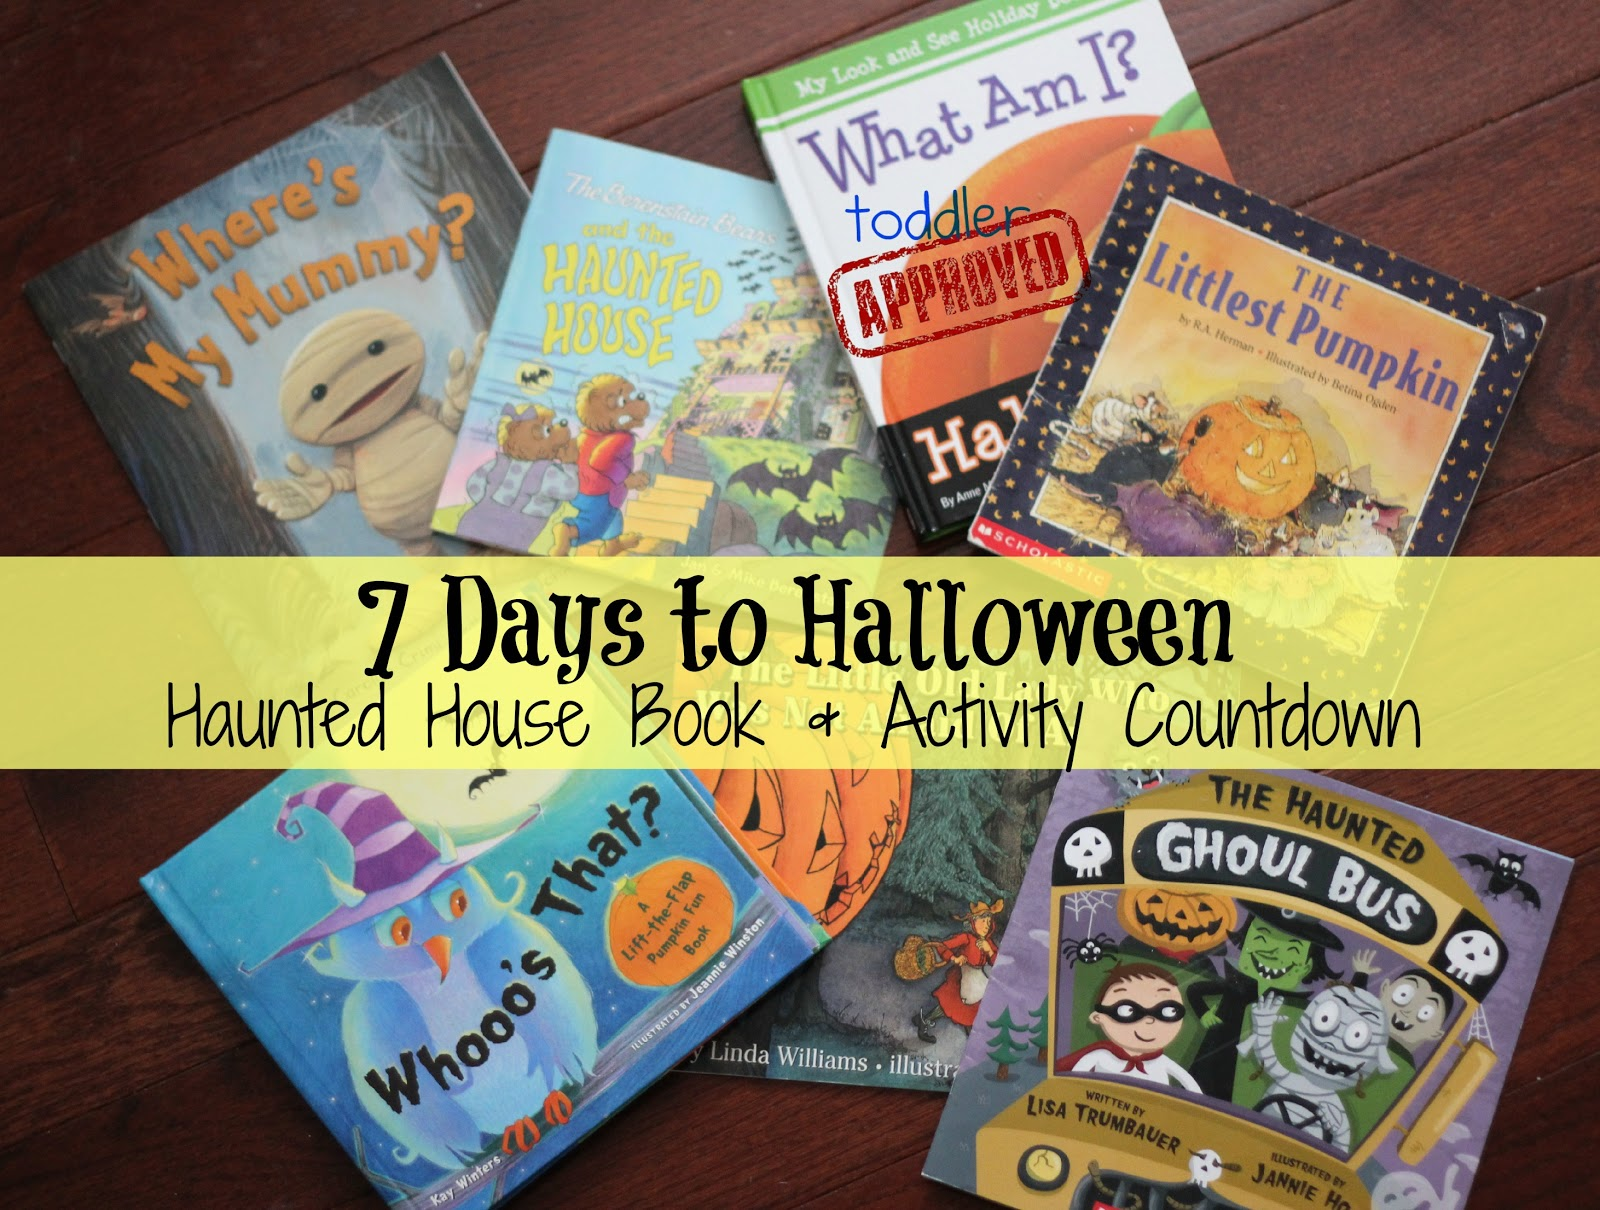 Toddler Approved!: 7 Days to Halloween Haunted House Book